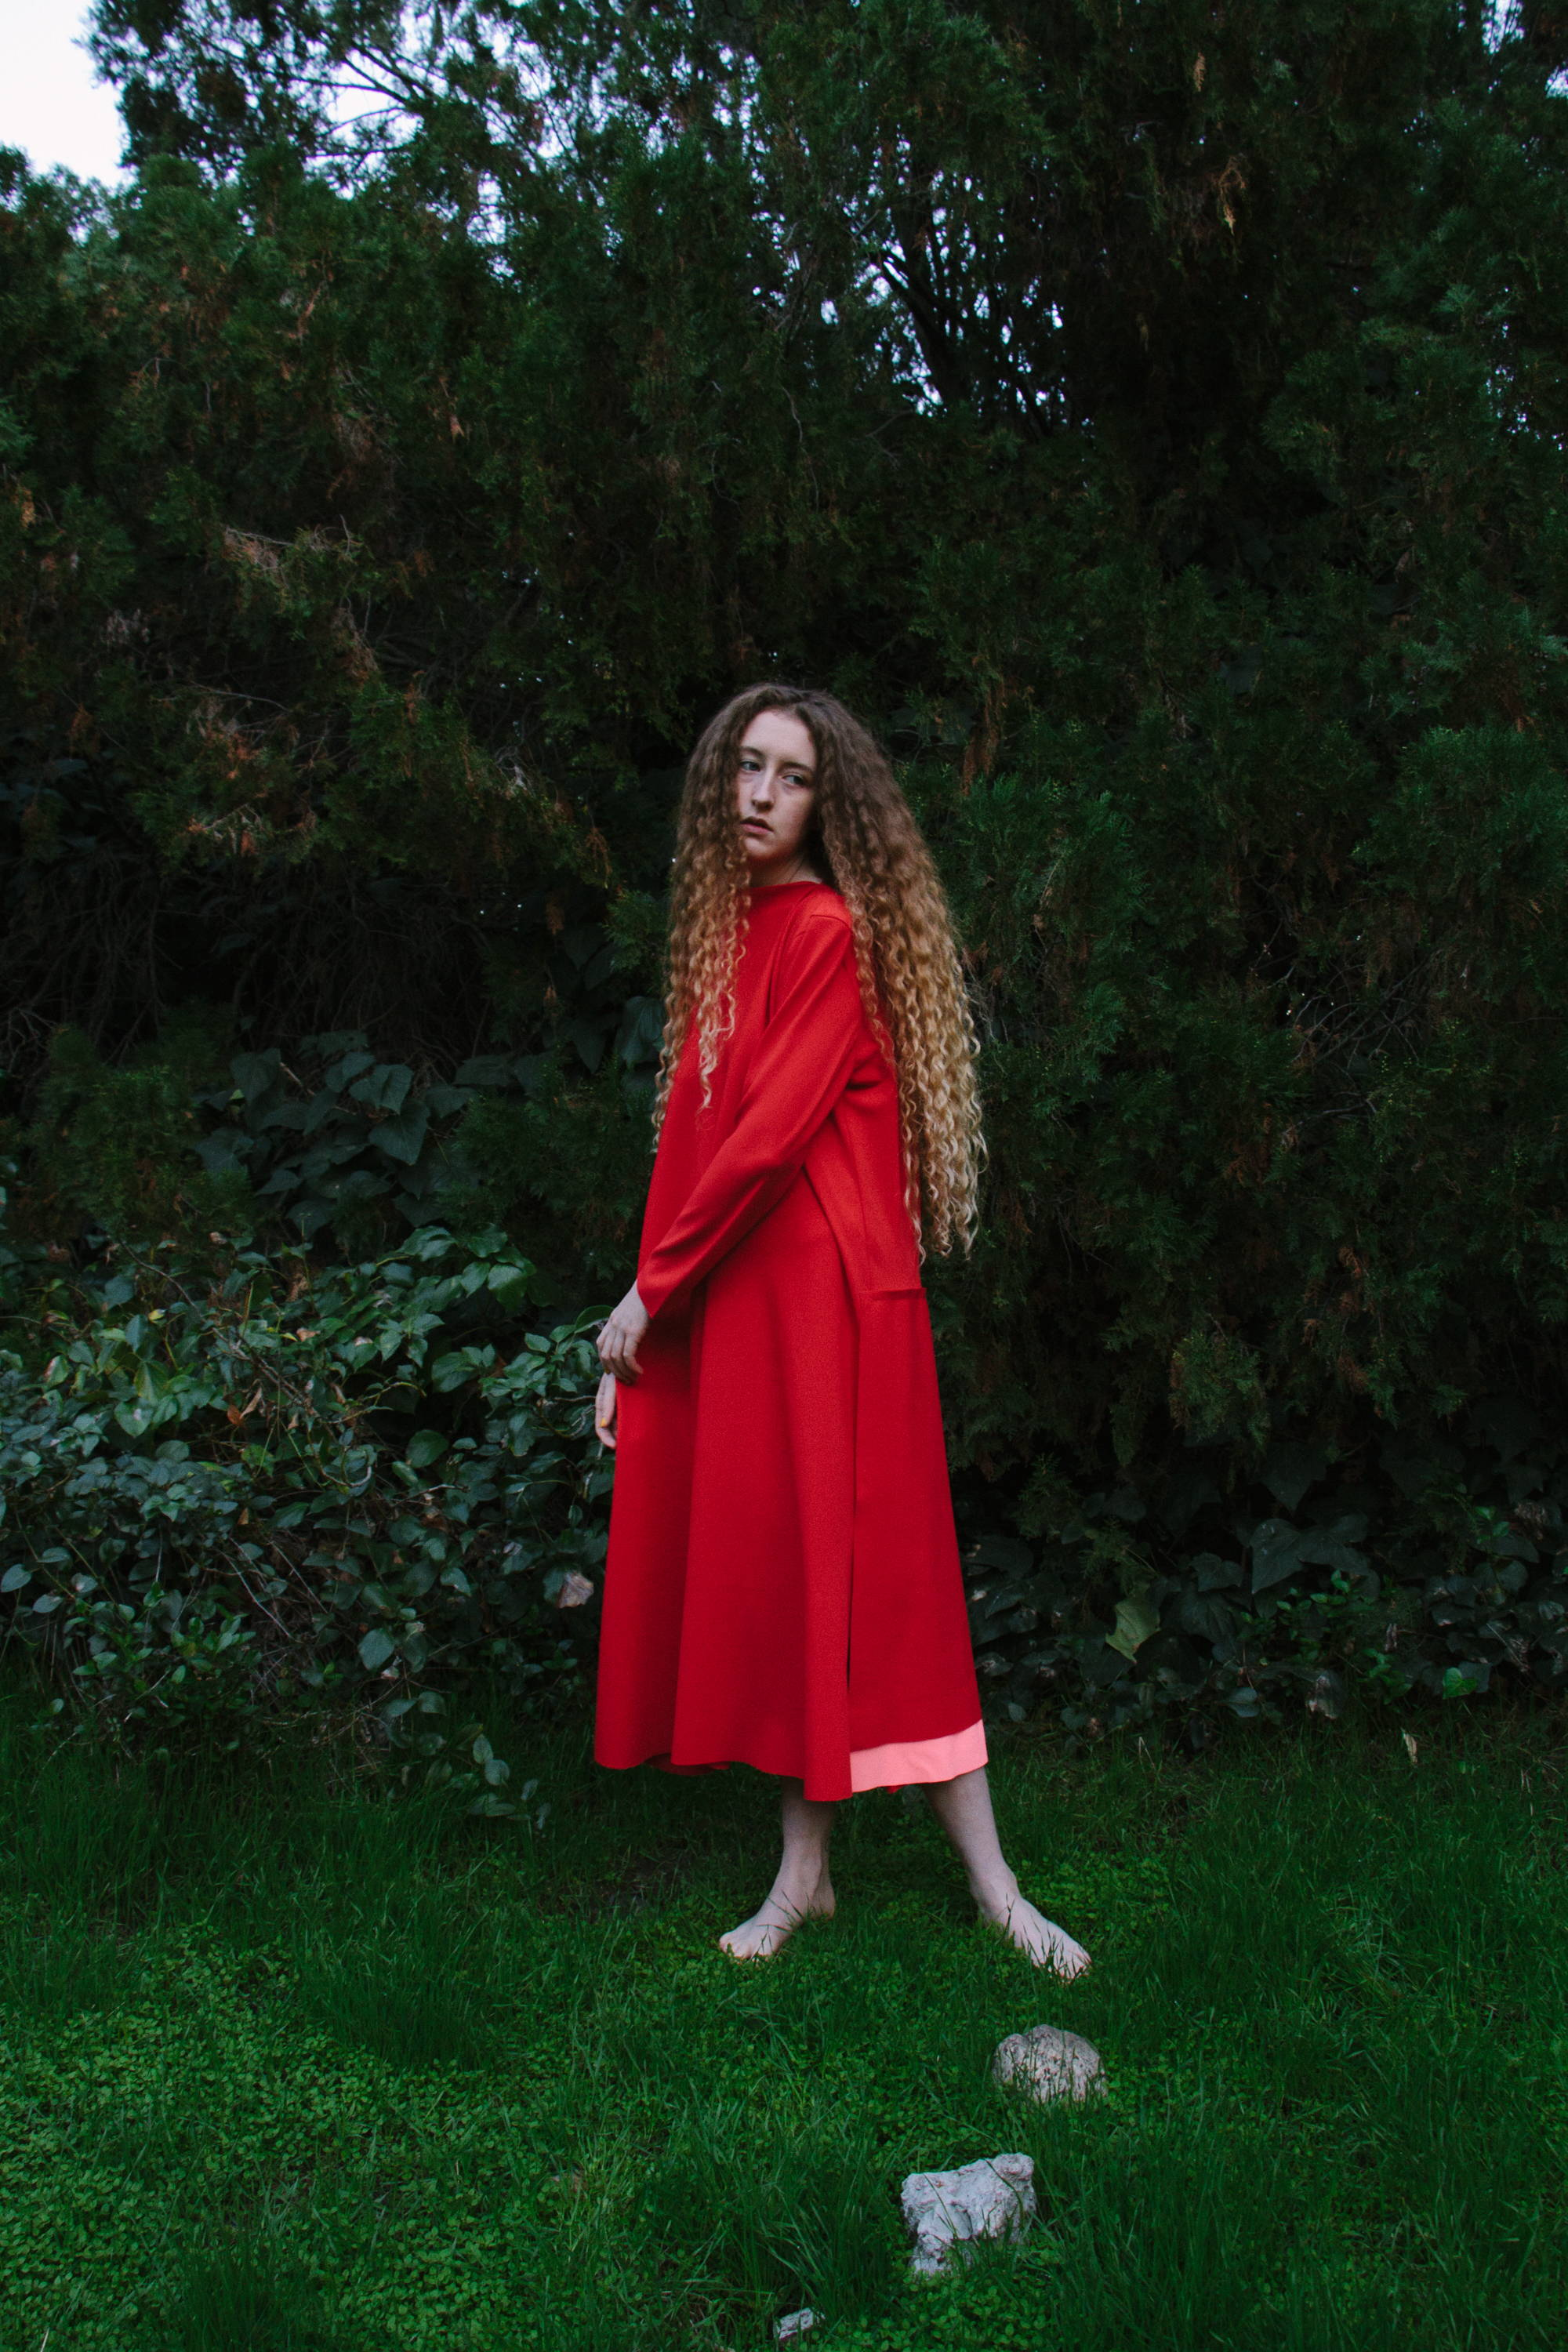 red draped dress by melitta ss18 baumeister- hlorenzo women feature